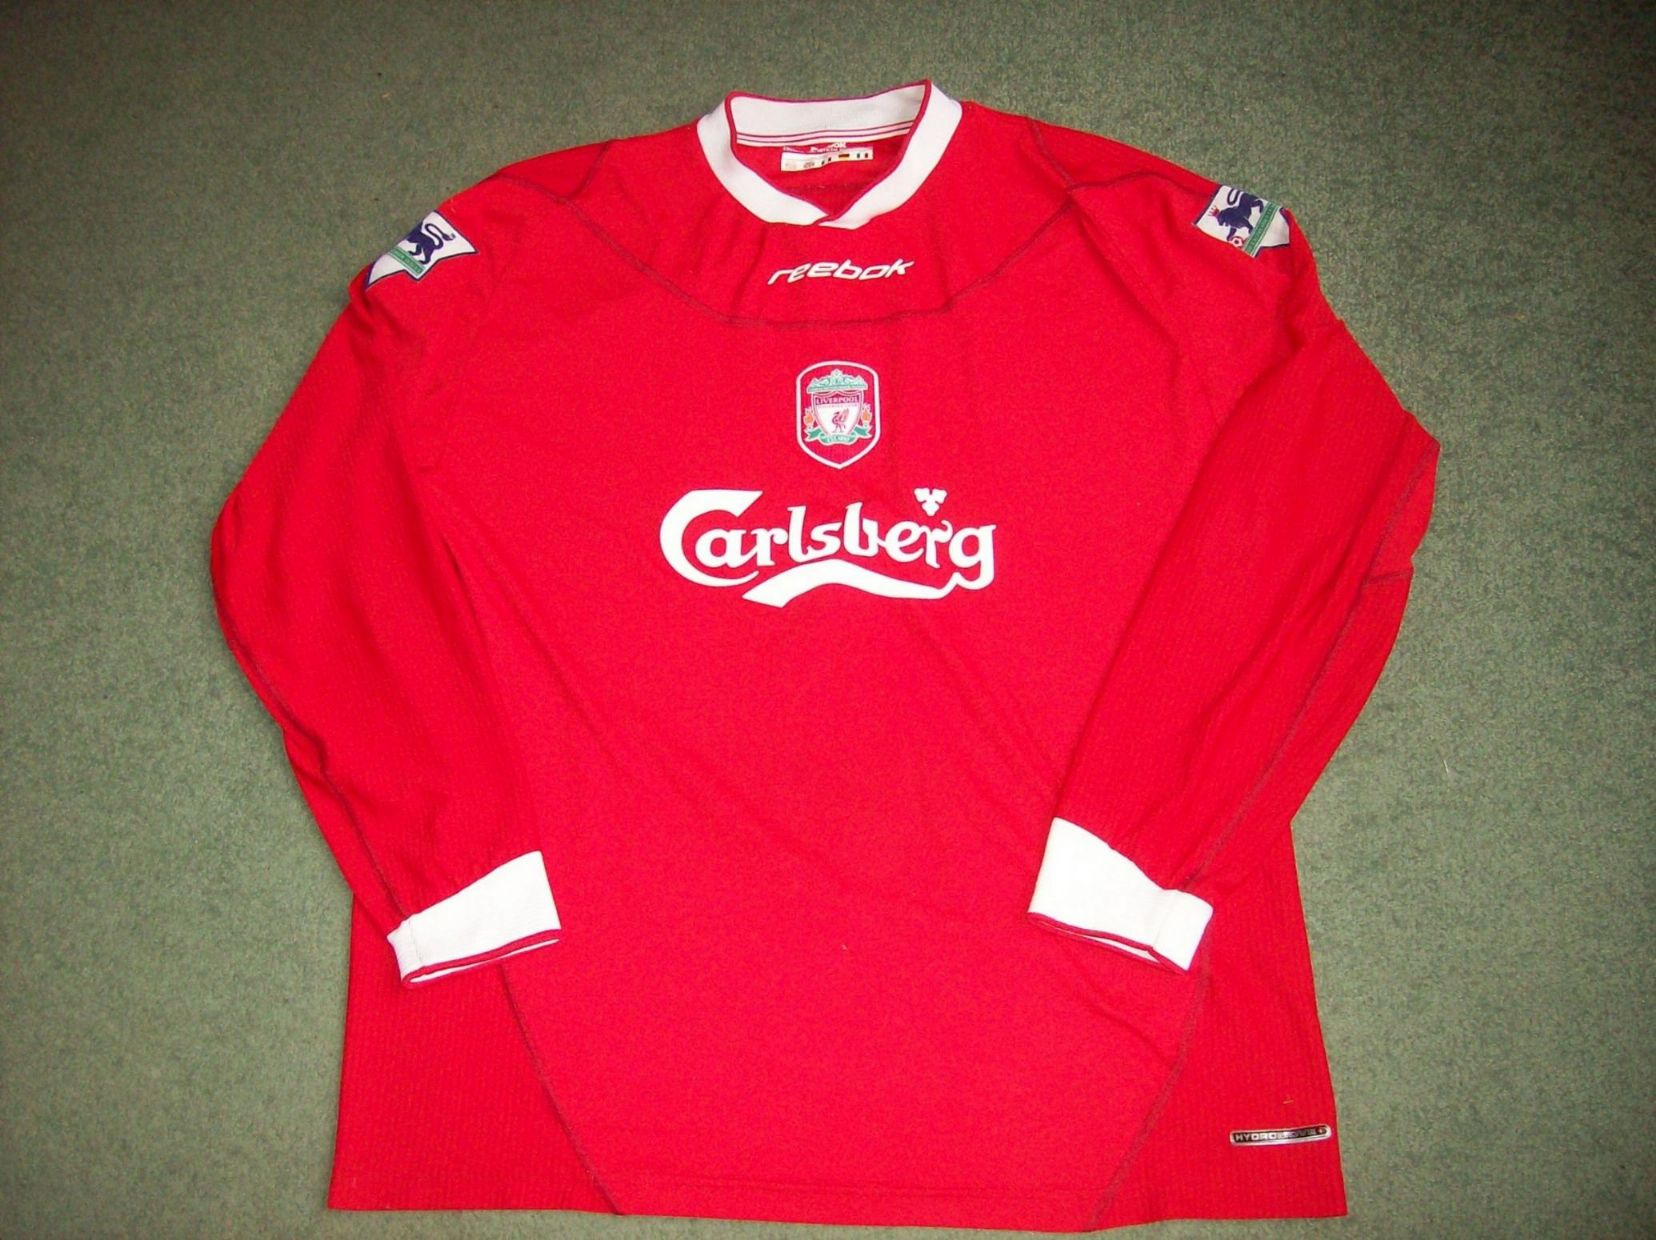 cheap for discount 0c0a4 9ccef 2002 2004 Liverpool L/s Adults Large Long sleeved Classic Football Shirt  Vintage Soccer Jersey